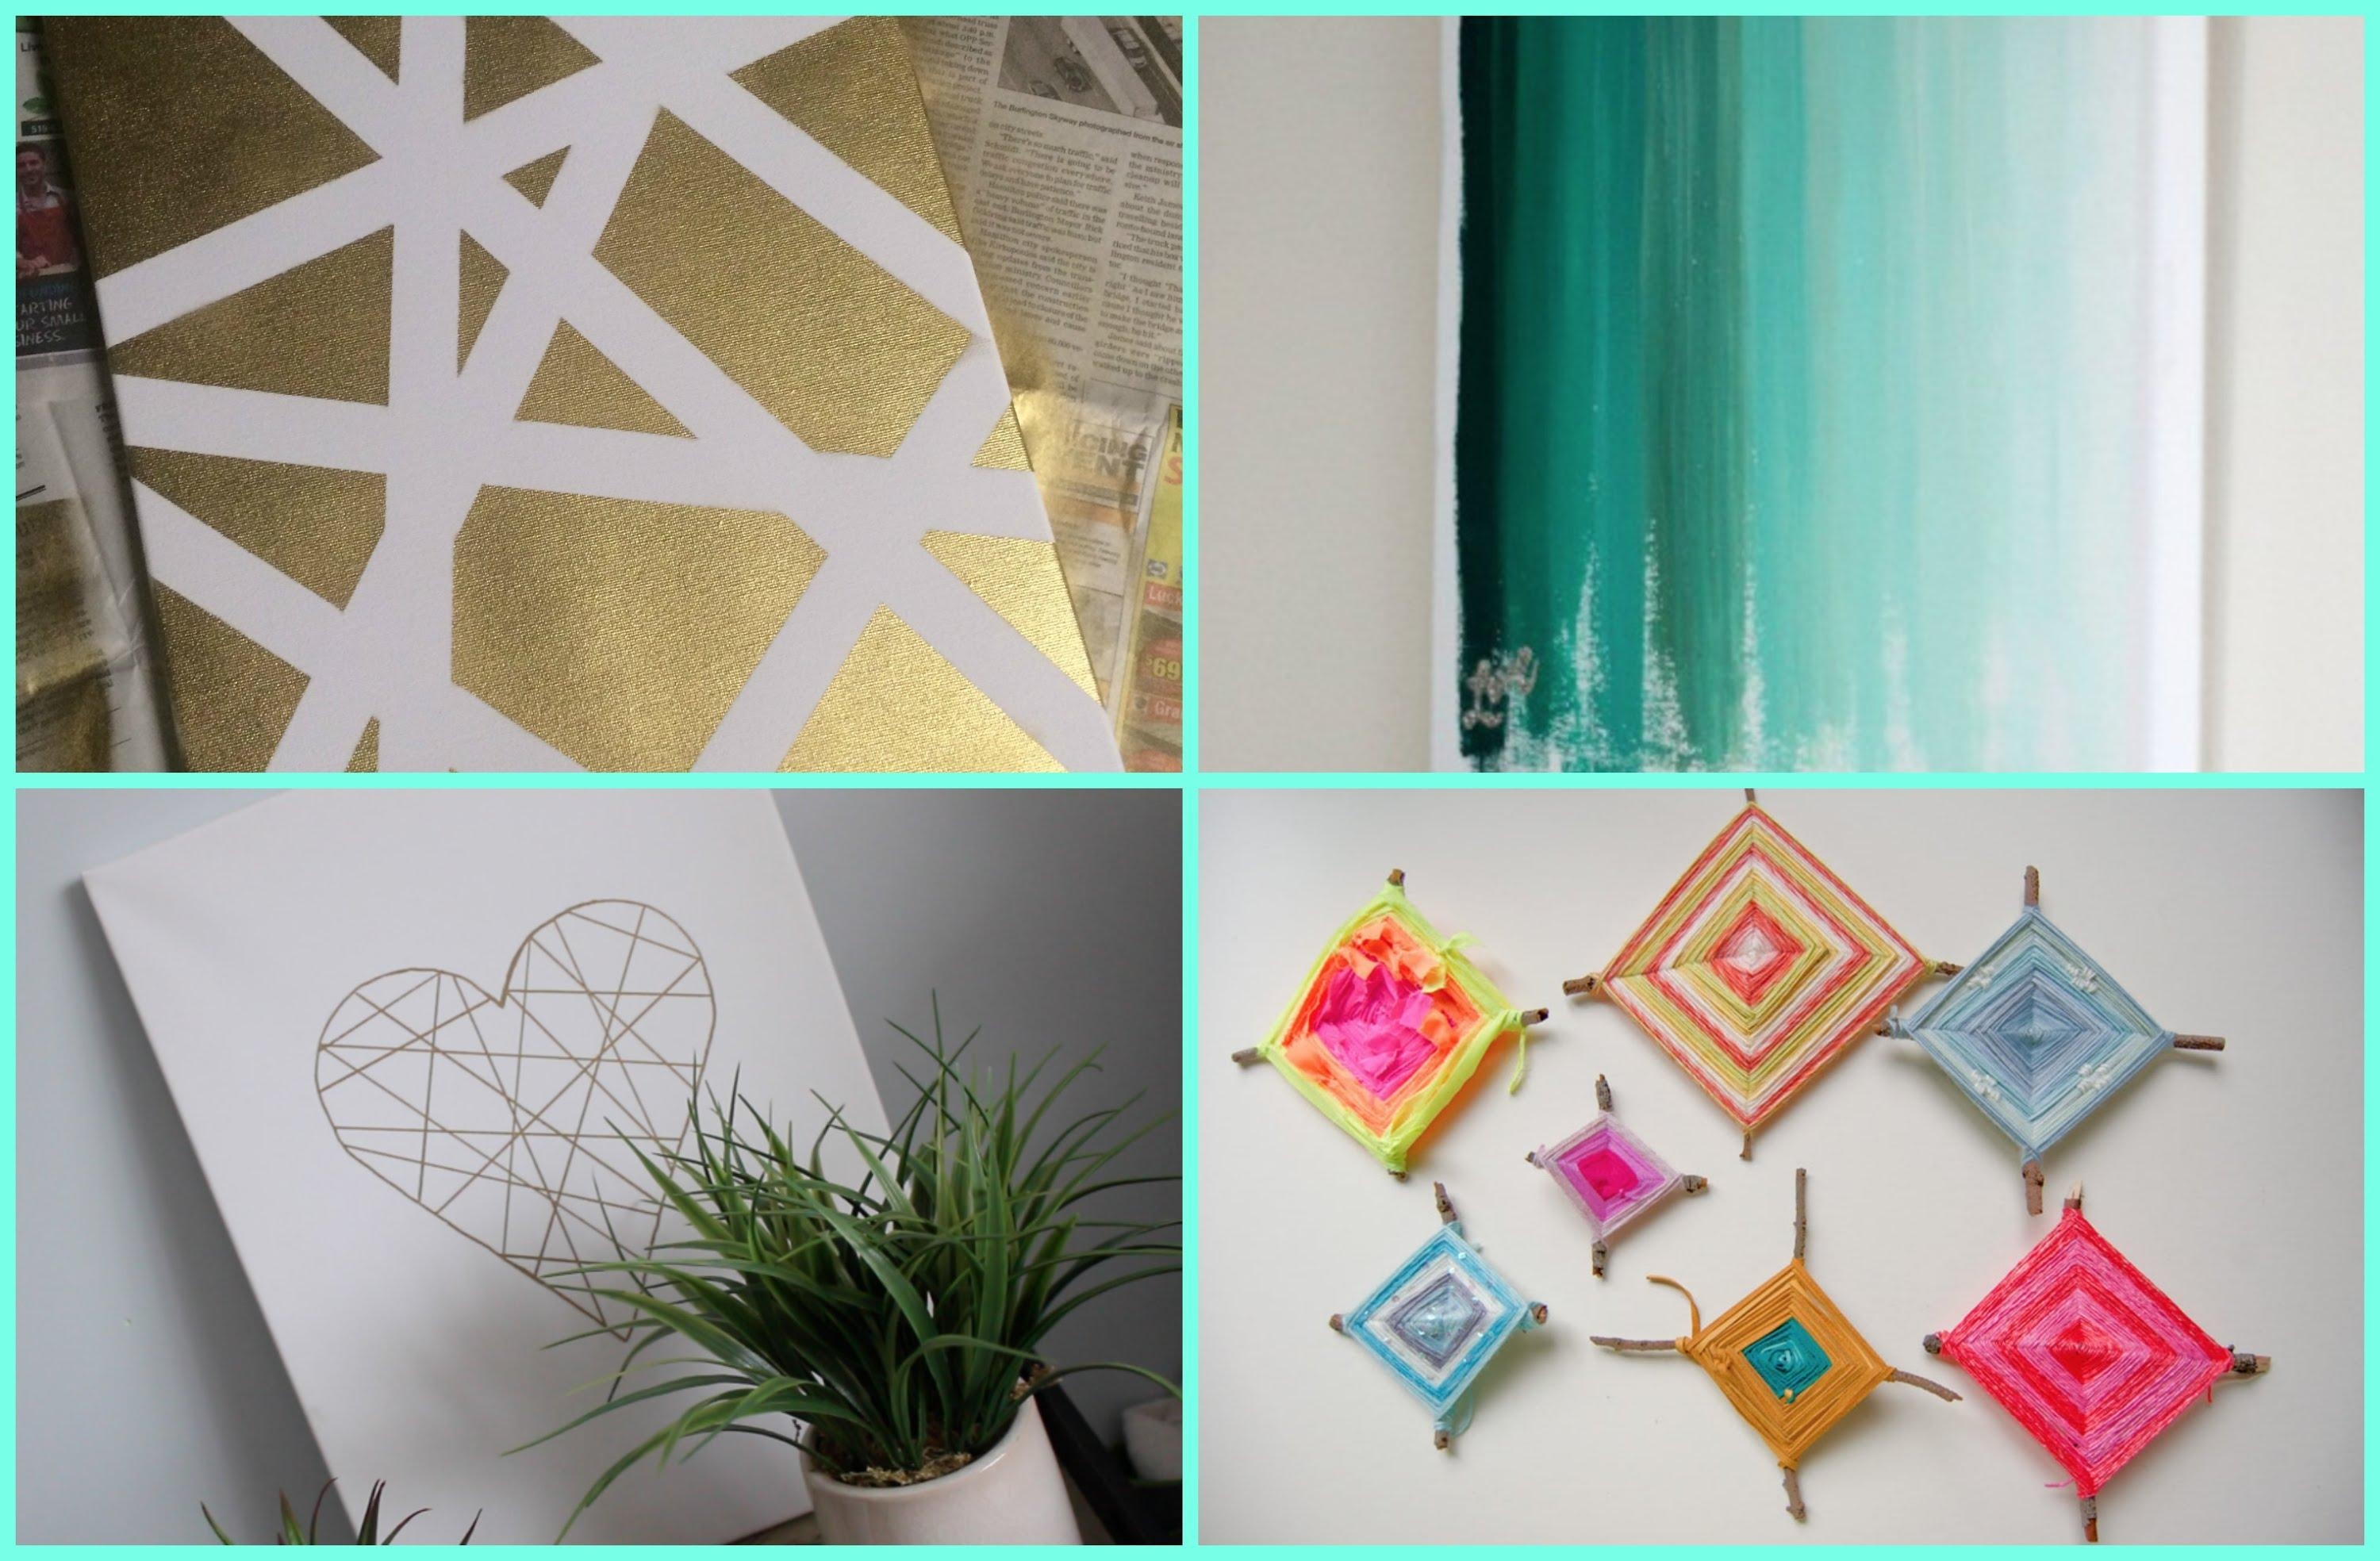 Home Decor: Diy Dorm Room Decor Wall Art Youtube For Wall Art For Teens (Image 11 of 20)